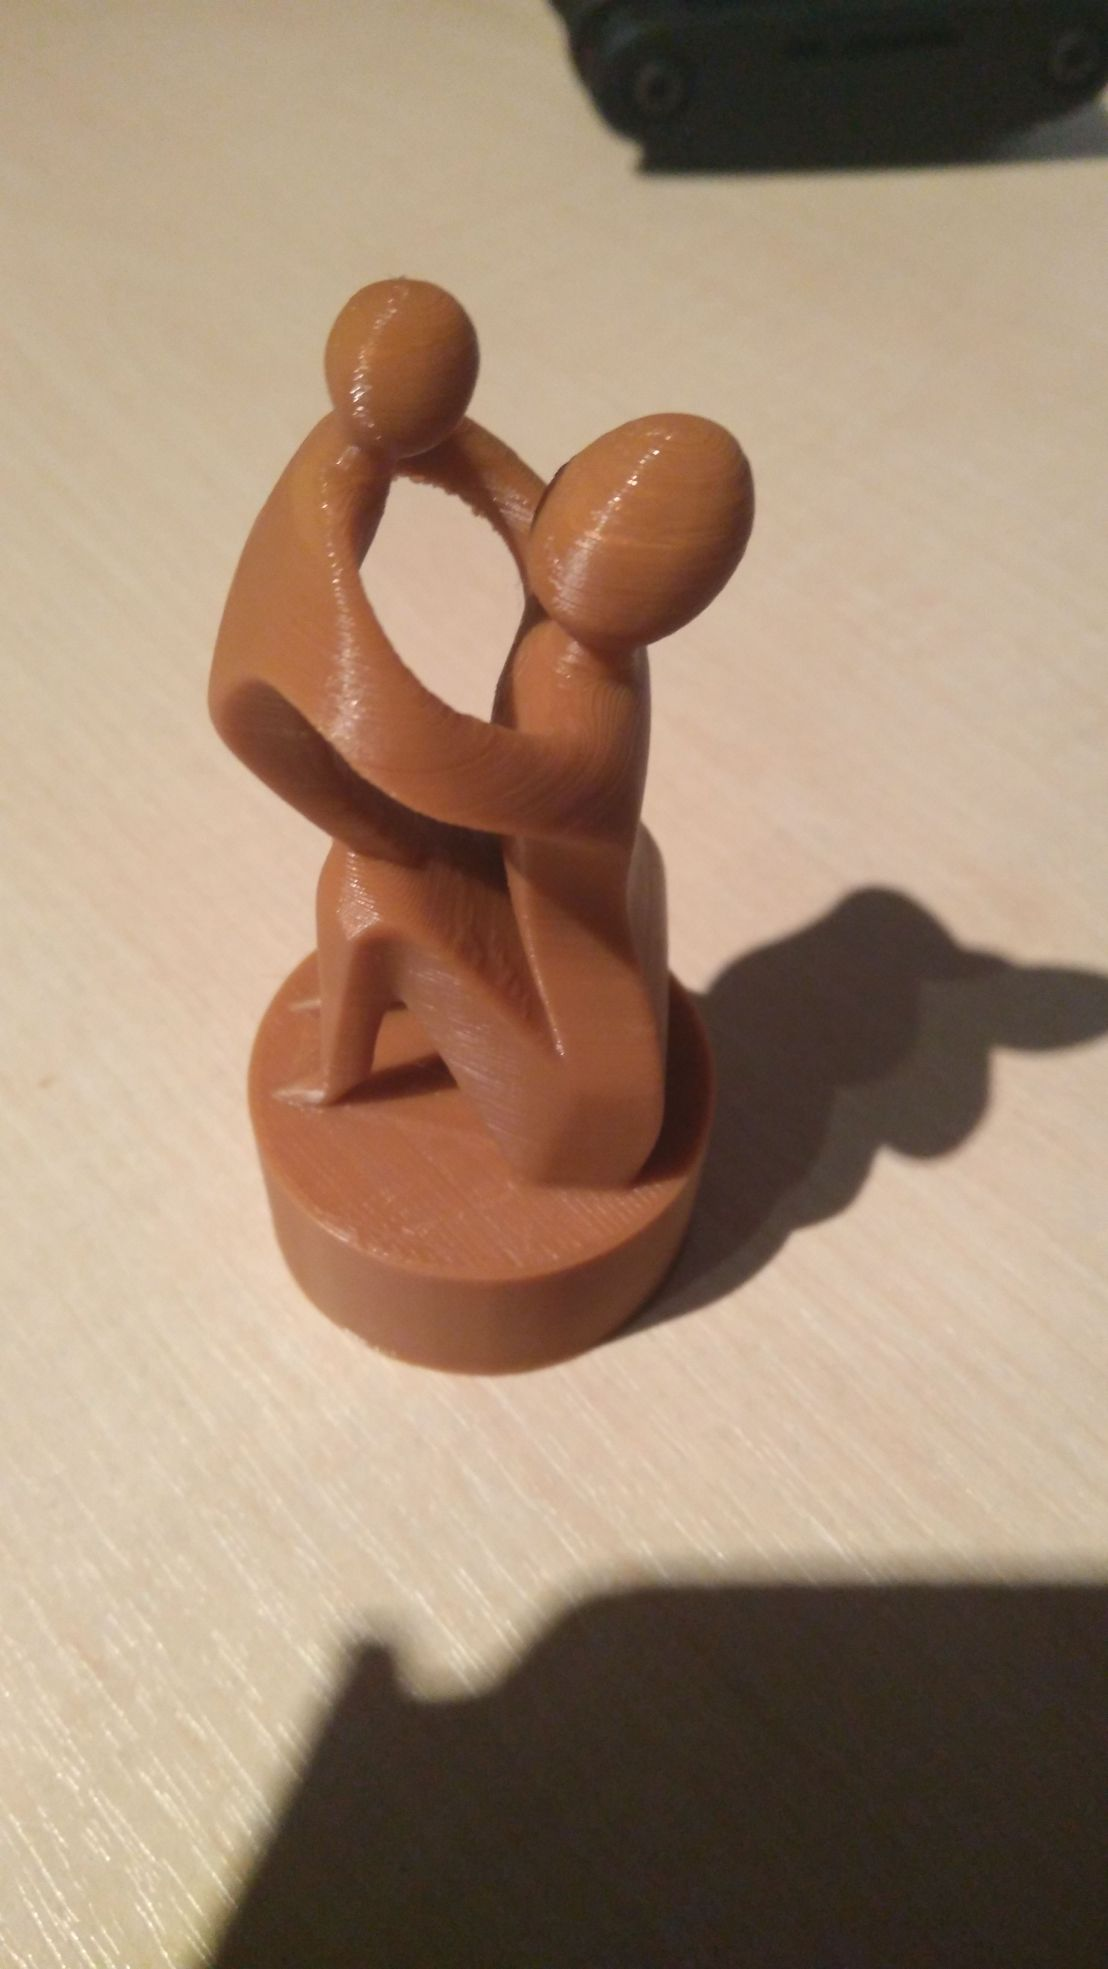 Mothers day – 3D printed sculpture